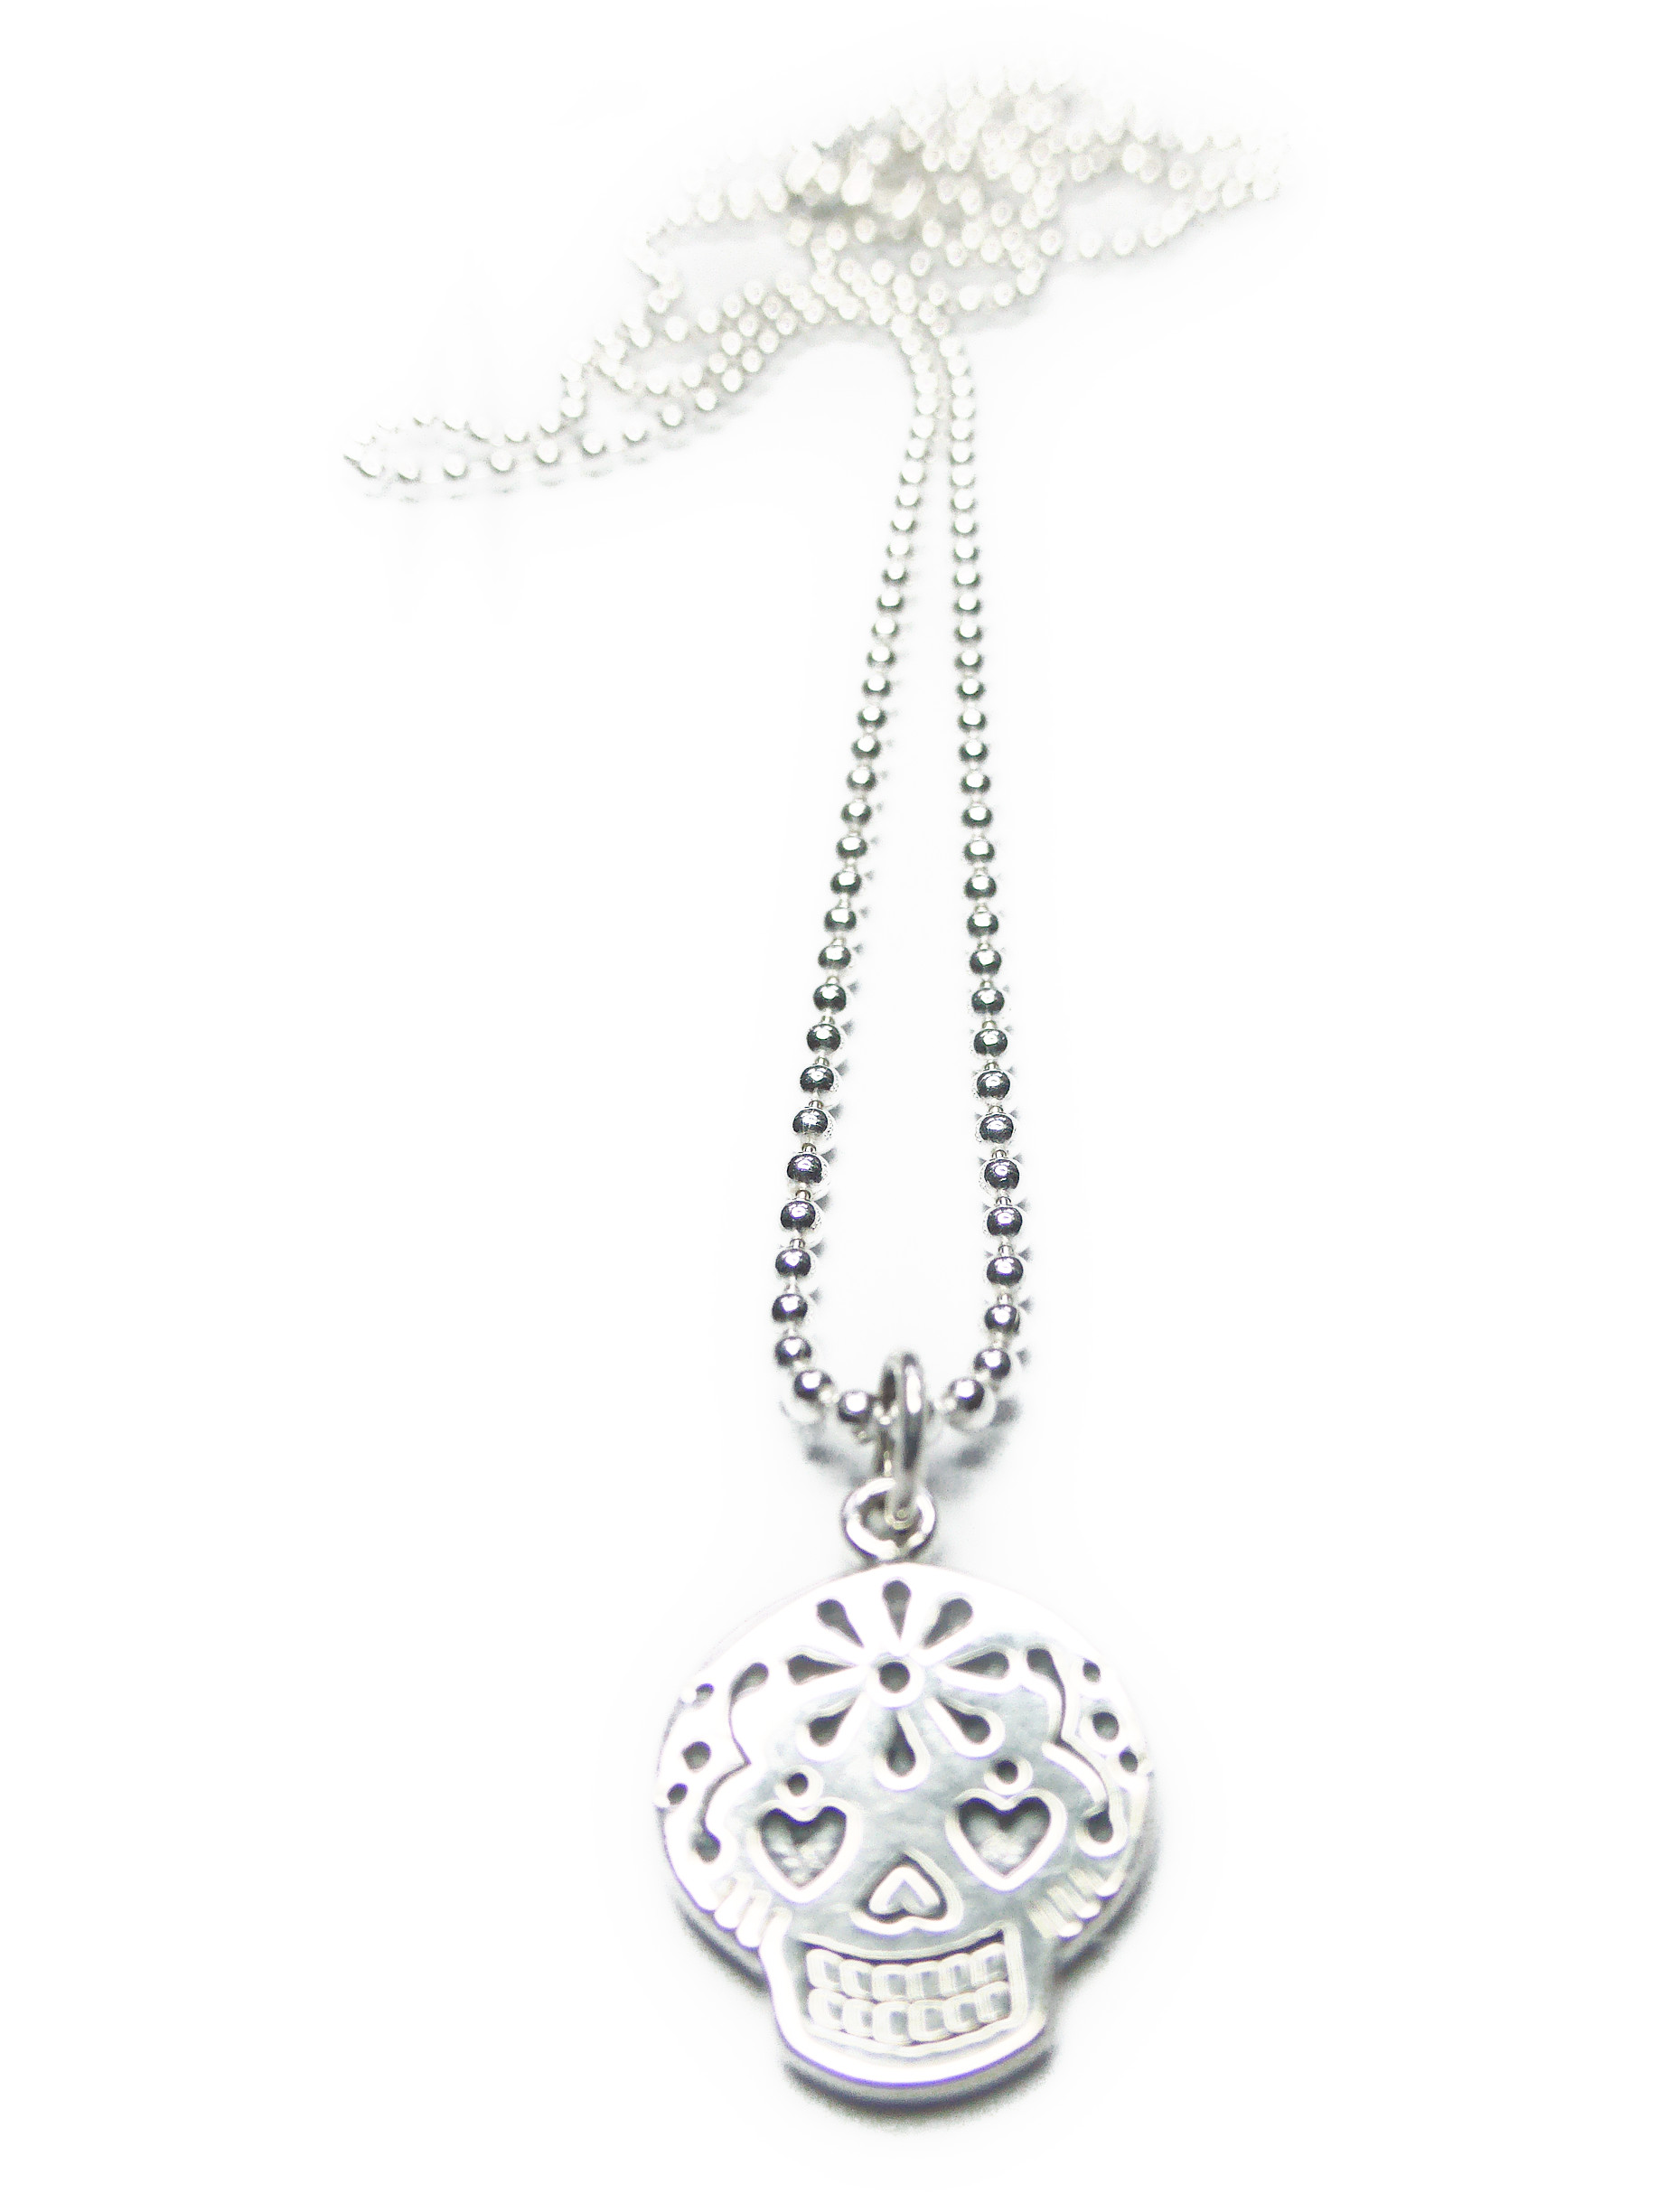 Sterling Silver Sugar Skull Ball Chain Pendant from Jacy & Jools